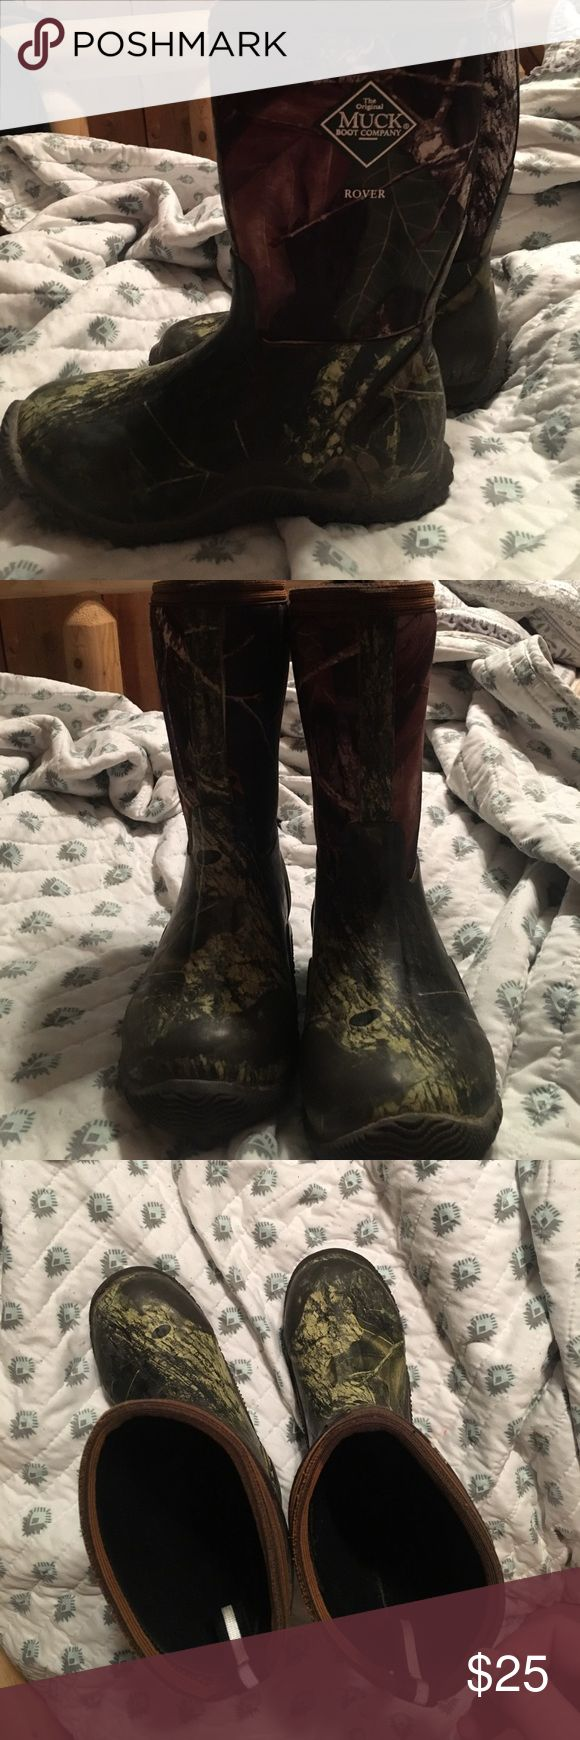 Boys muck boots Boys Muck boots camo size 1. Good condition muck Shoes Boots